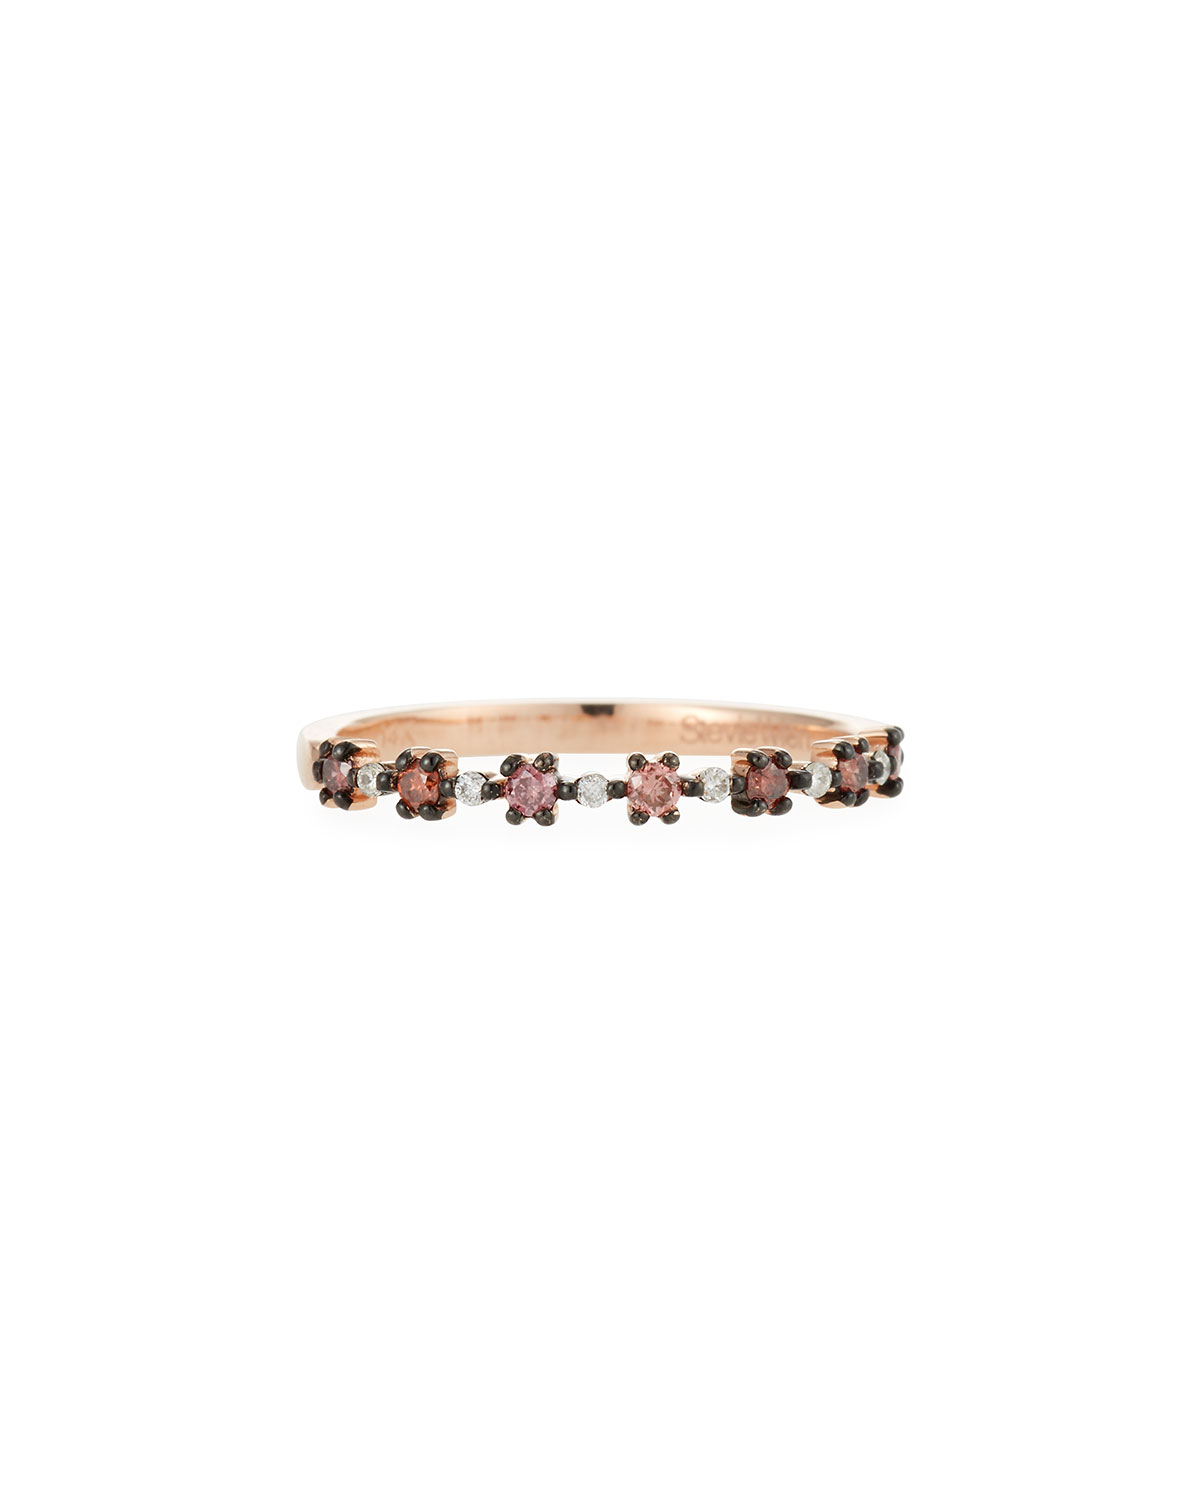 Stevie Wren Flowerette Stacking Ring in 14k Rose Gold with Pink Diamonds, Size 7